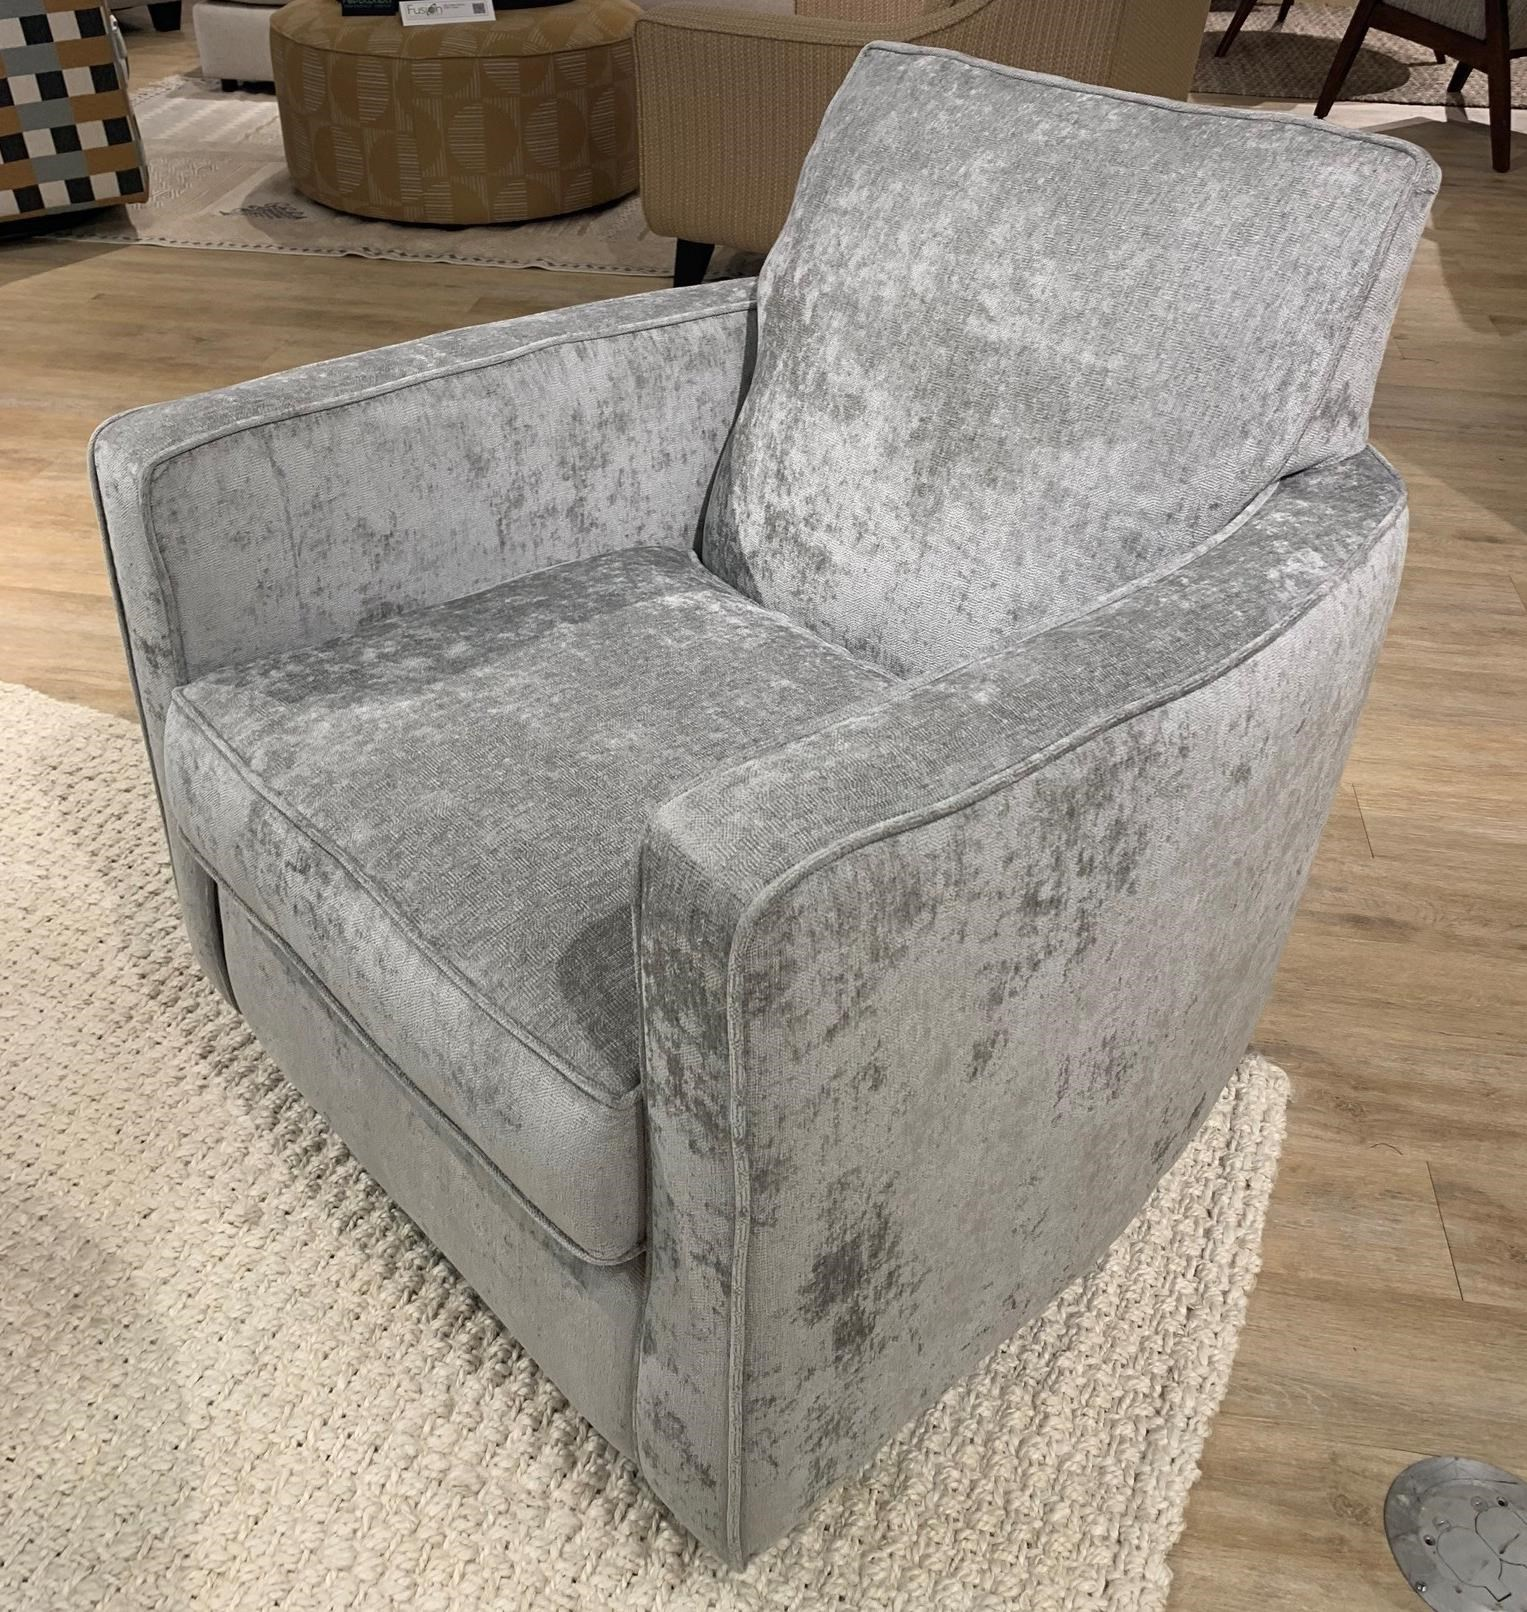 402-G Swivel Glider by Fusion Furniture at Prime Brothers Furniture